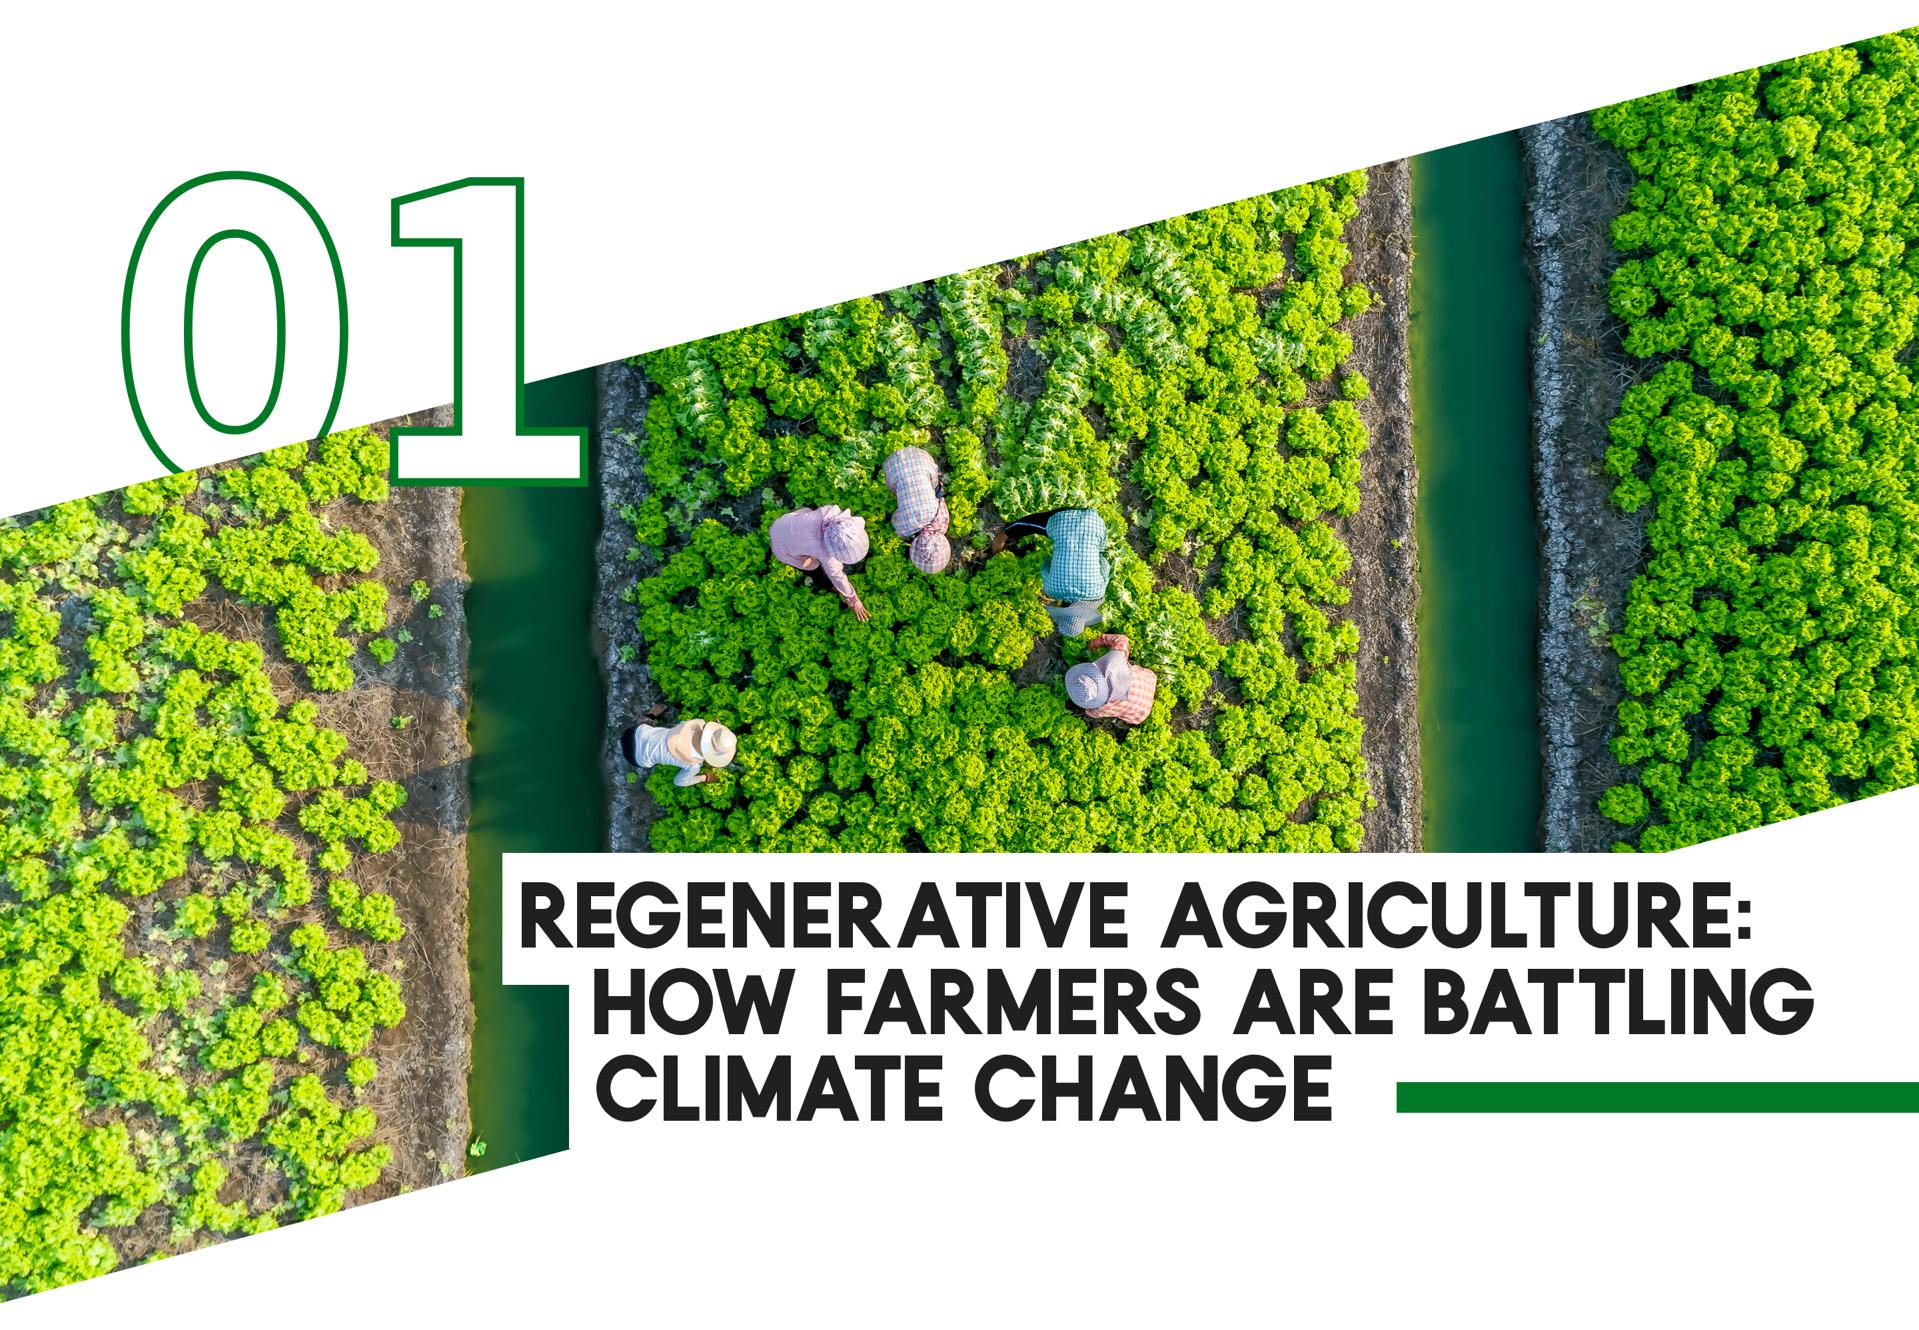 1 Regenerative Agriculture: How Farmers Are Battling Climate Change